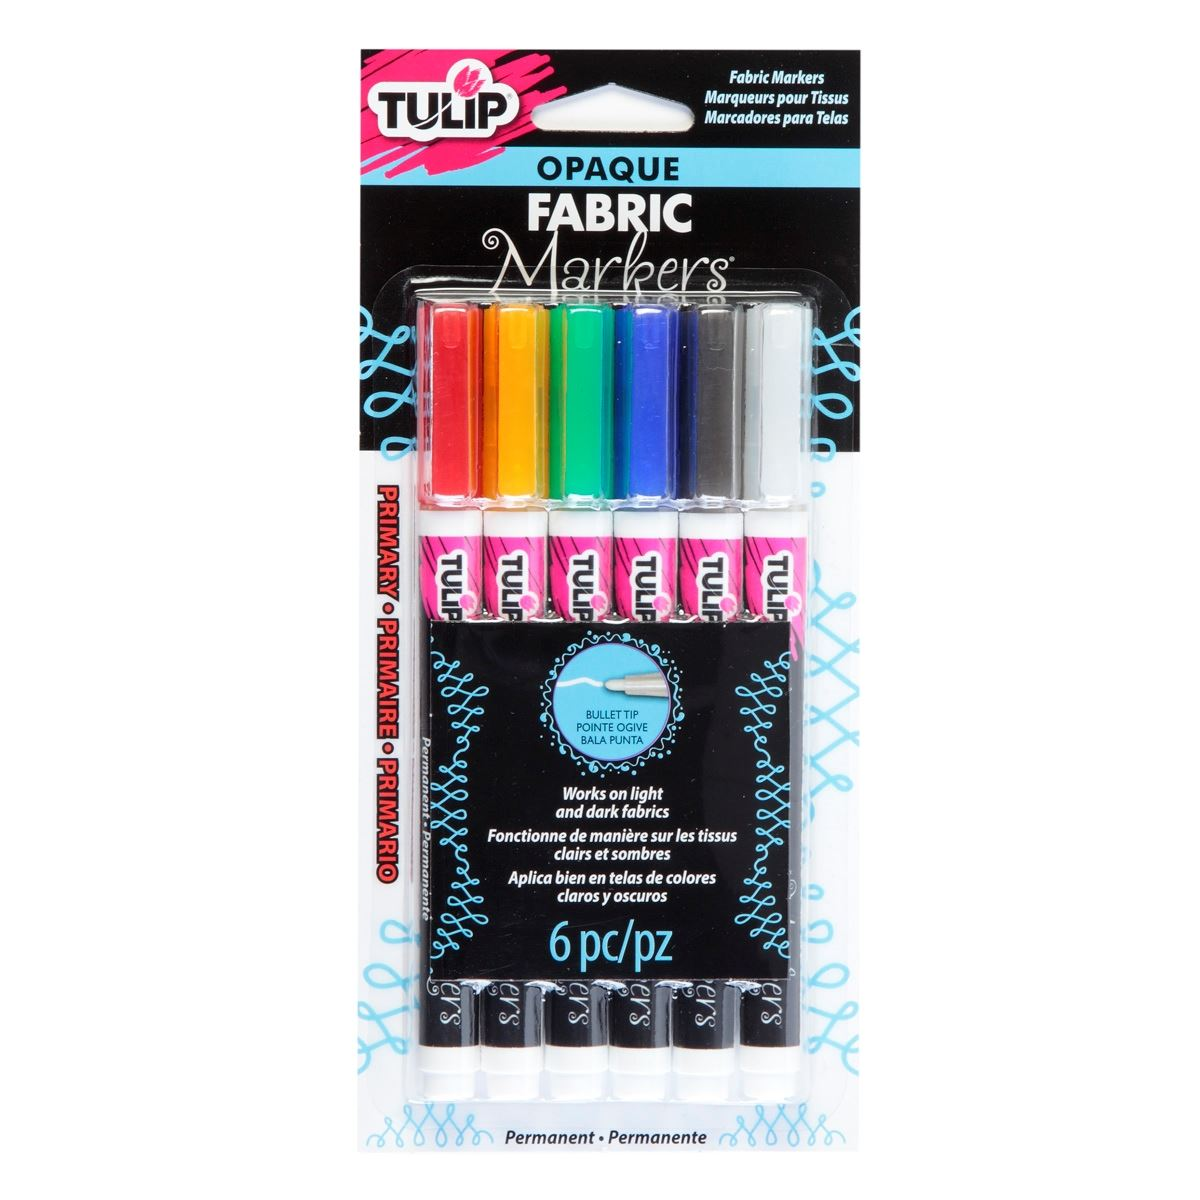 Picture of Opaque Fabric Markers Bullet Tip 6 Pack